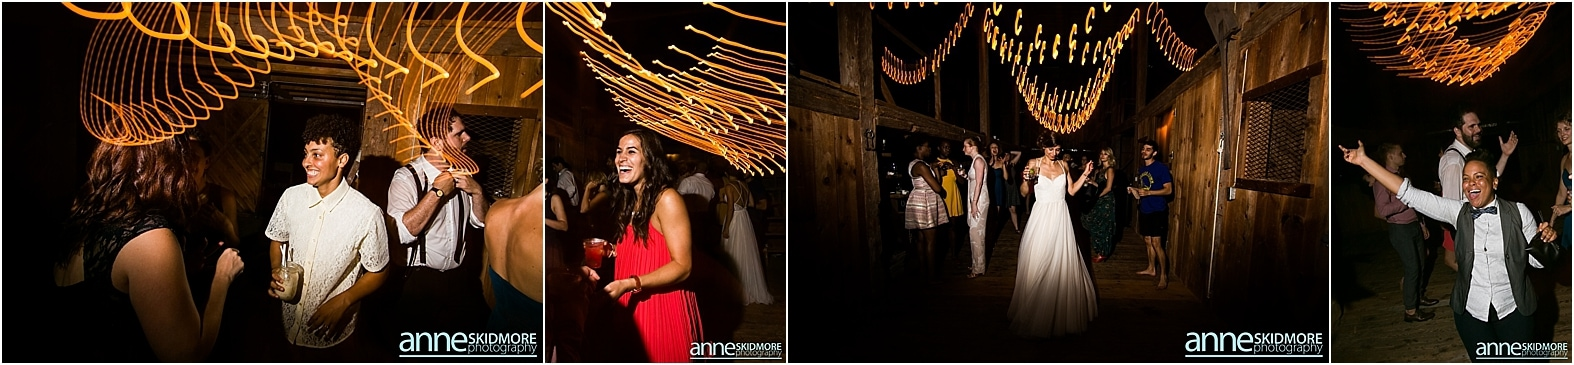 Maine_Barn_Wedding_0063